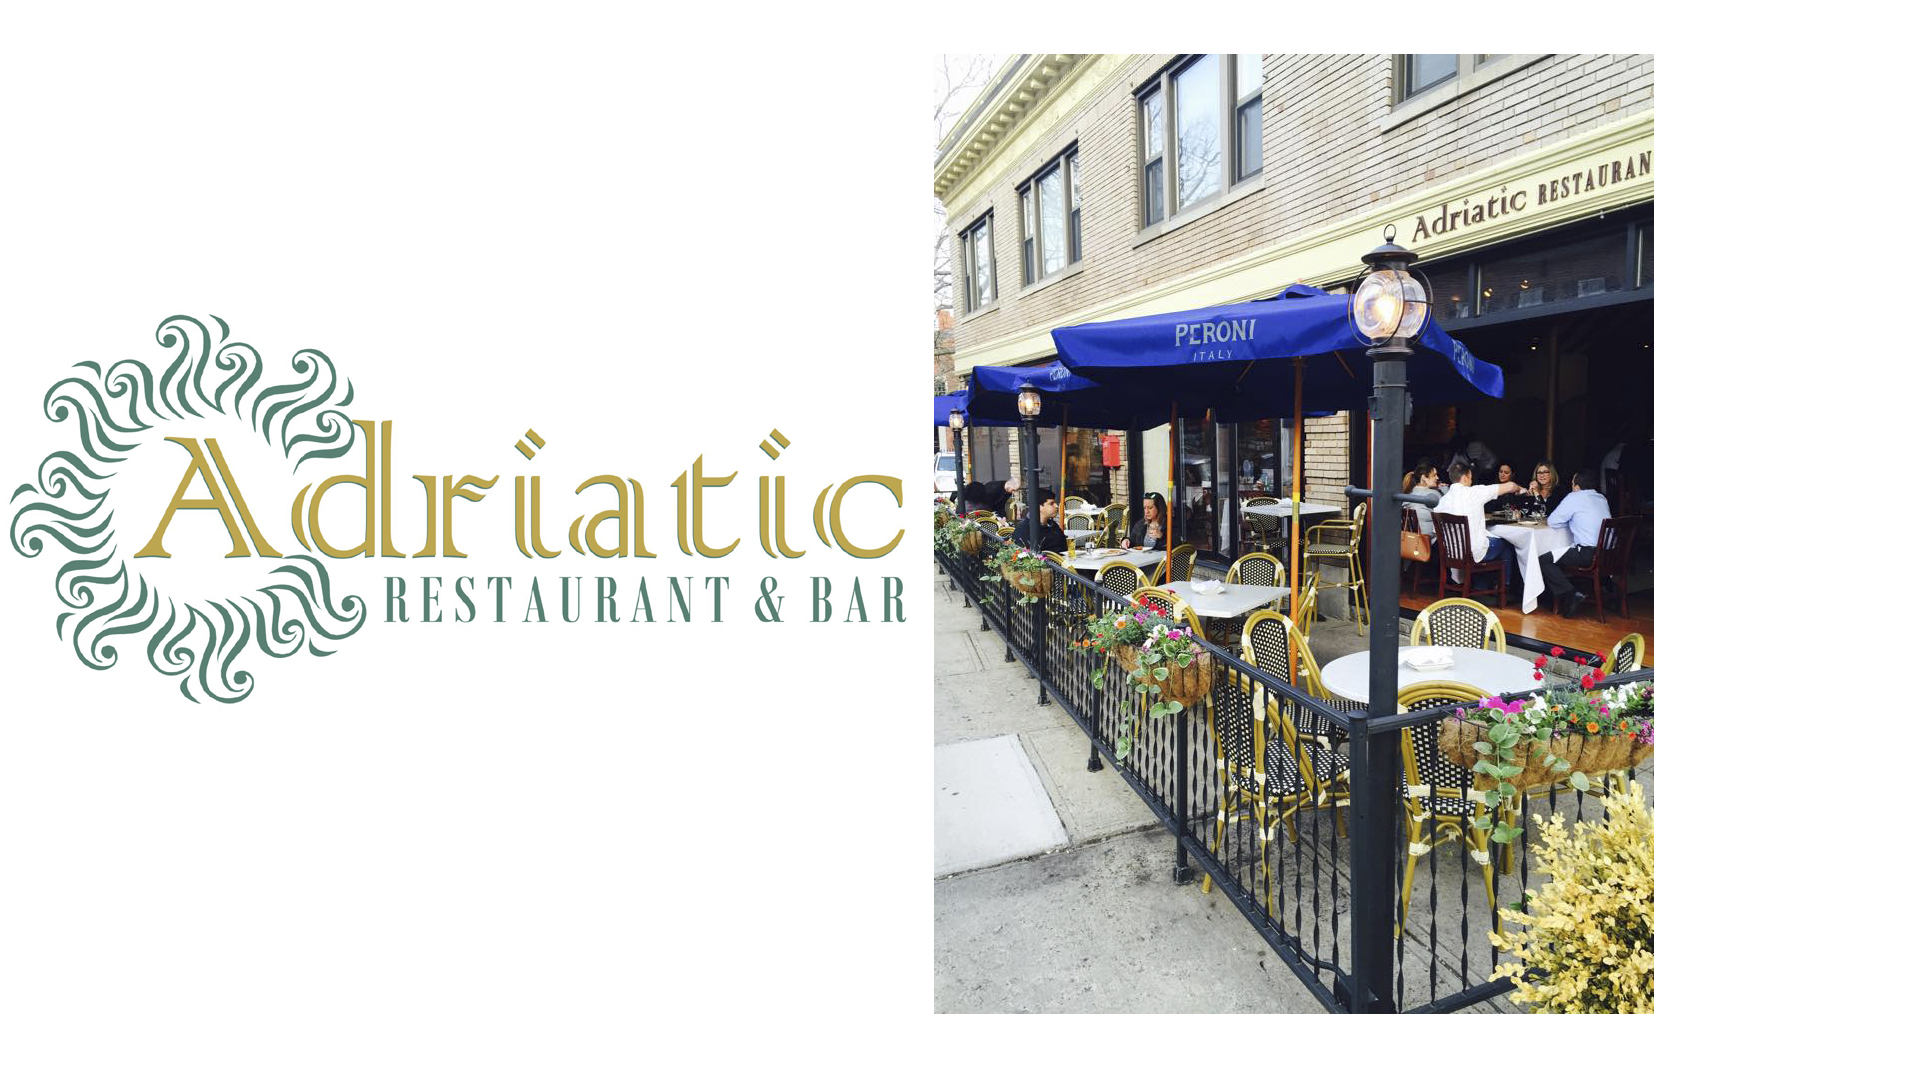 After Hours at Adriatic Restaurant